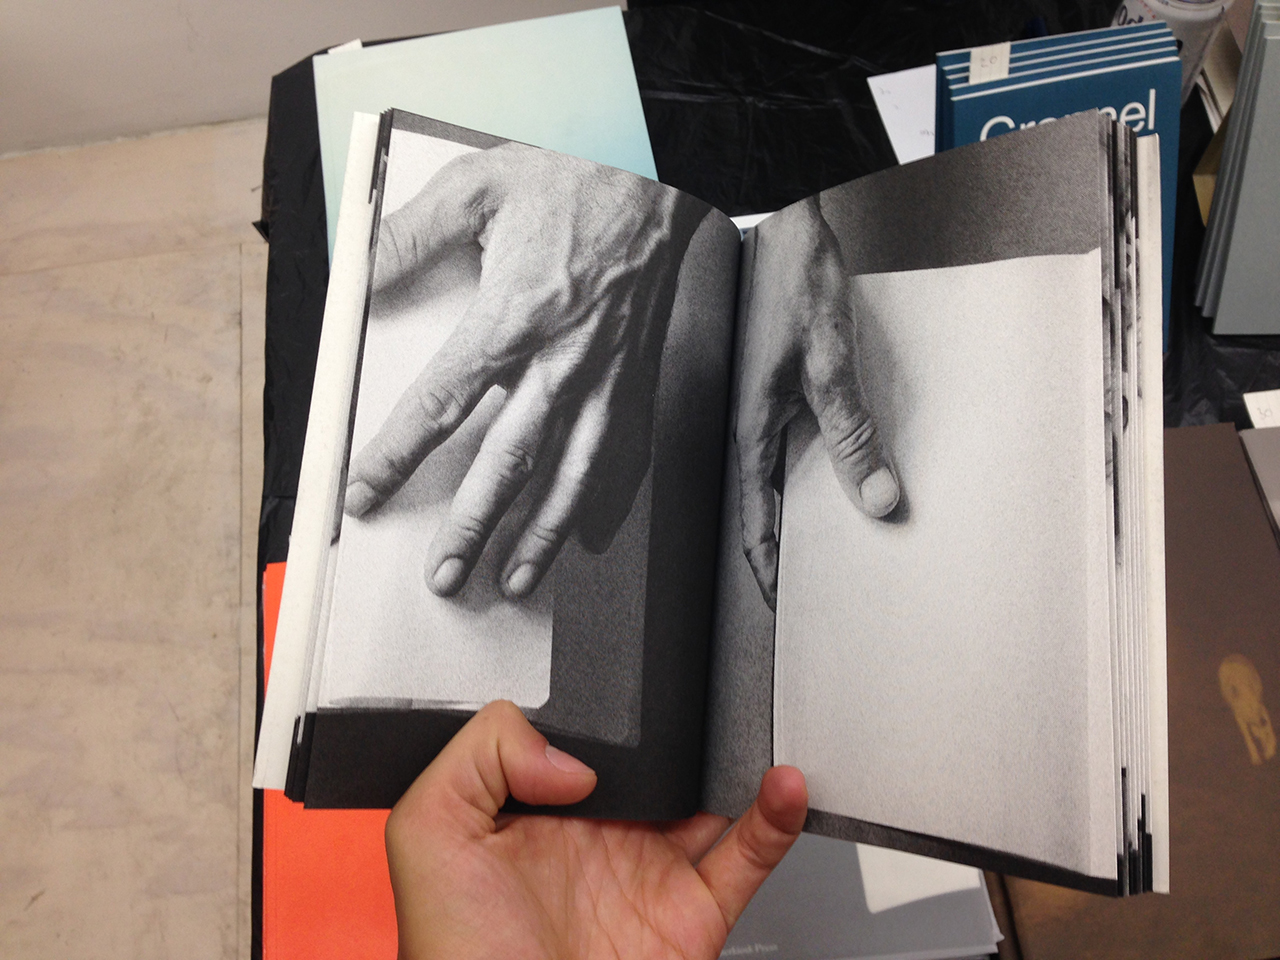 Emil Salto, One Hand, and the Other, 2014. Black/White Risoprint, 19 x 14.5 cm. 28 pages, 28 images. Cornerkiosk press 2014